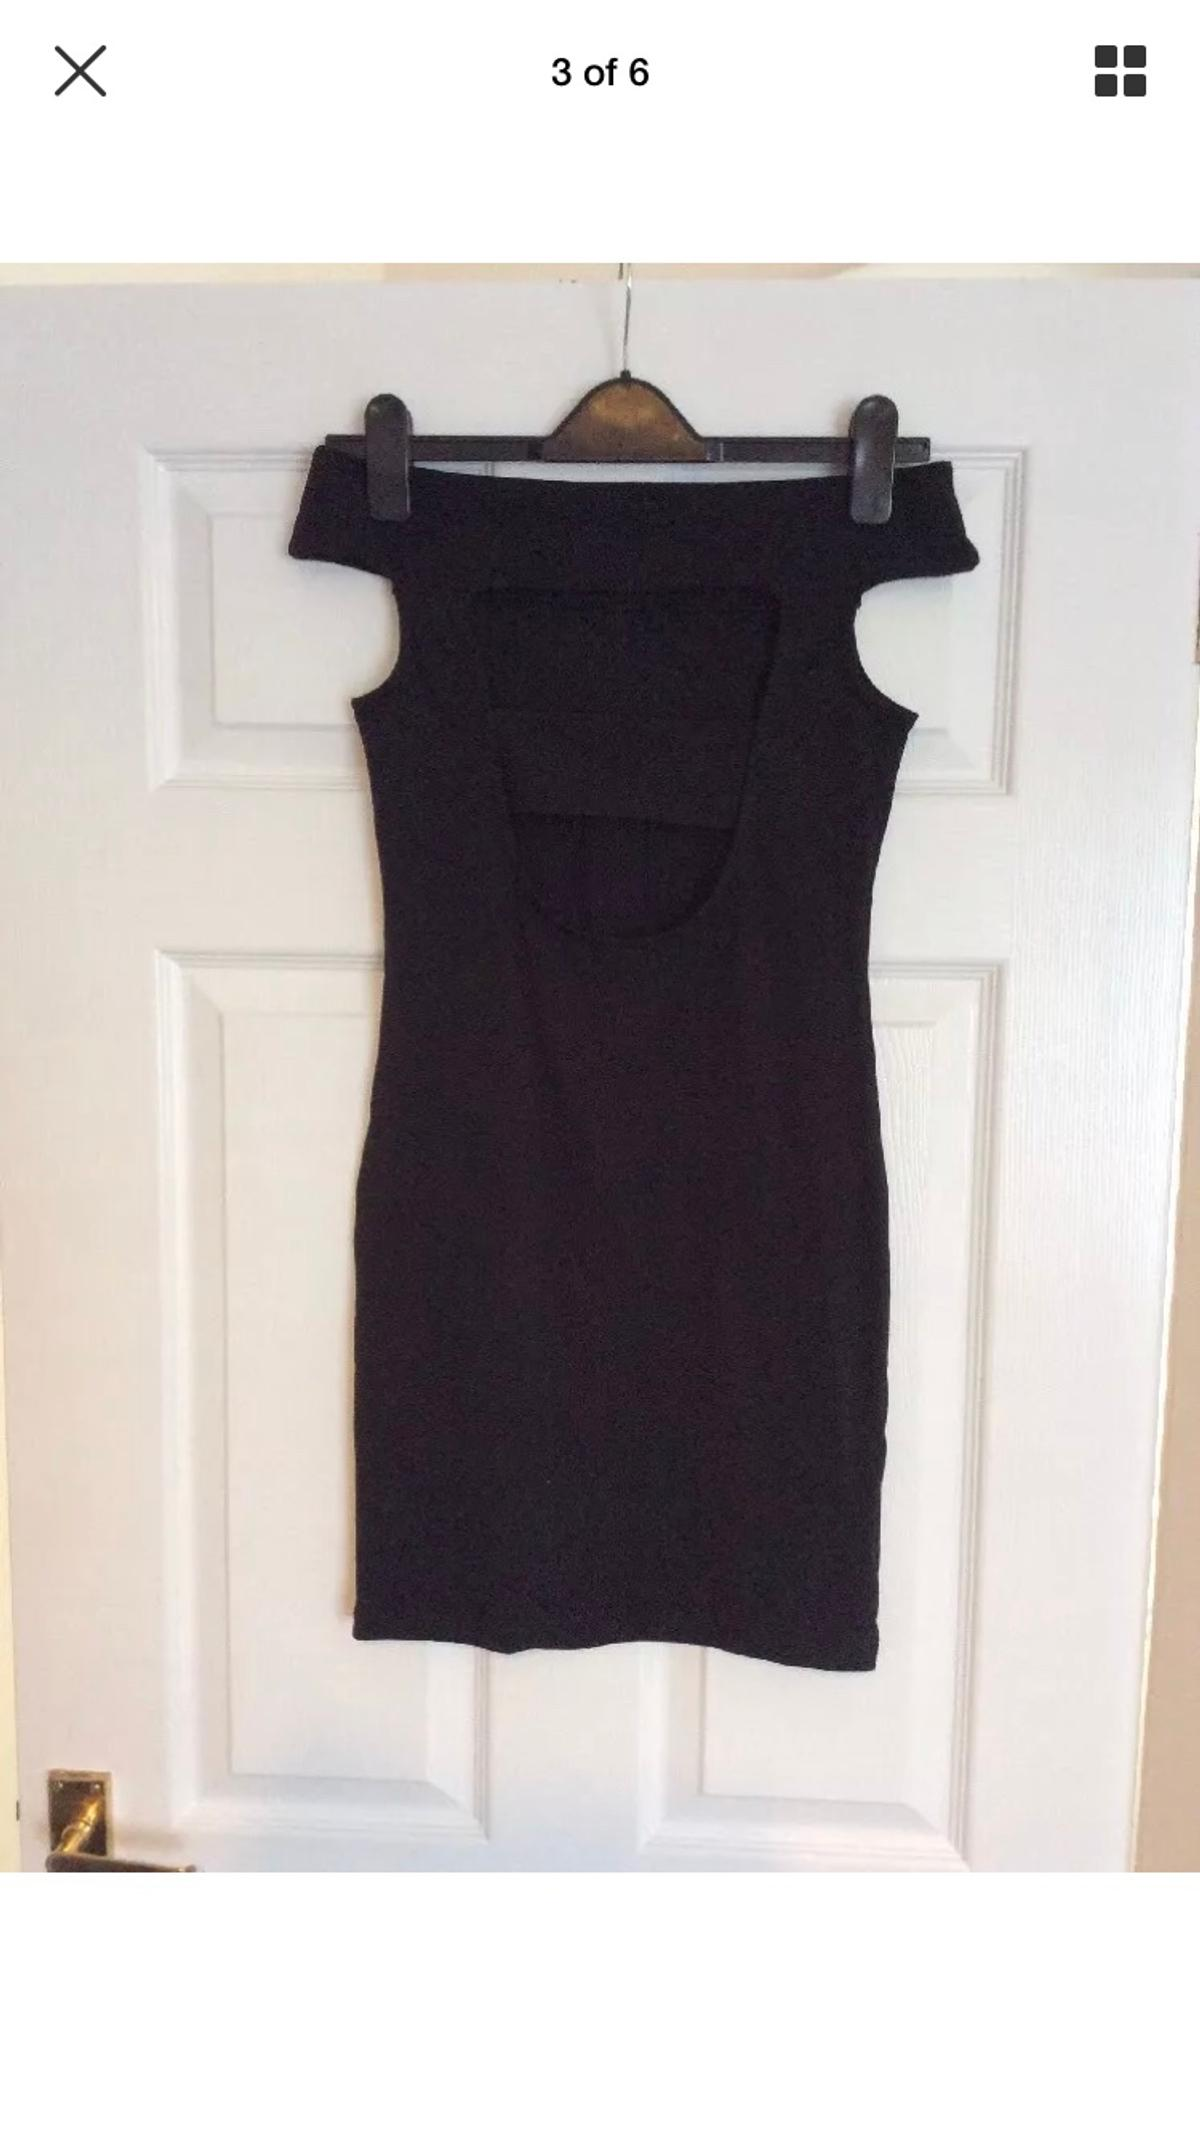 Bnwt Brand New Asos Black Zara Strap Back Bardot PLT Dress Size 8 RRP £32 ⚠️ NO OFFERS! 🙏💗 ❤️ Check out my other items.... you will not be disappointed! ❤️ 5 ⭐️ reviews due to many happy buyers who keep returning. New items added daily.. 👛👠👗👙👖💌 From a clean, pet & smoke free home 🏠 Selling loads more bargains 💰👀 Take a look 👀💗